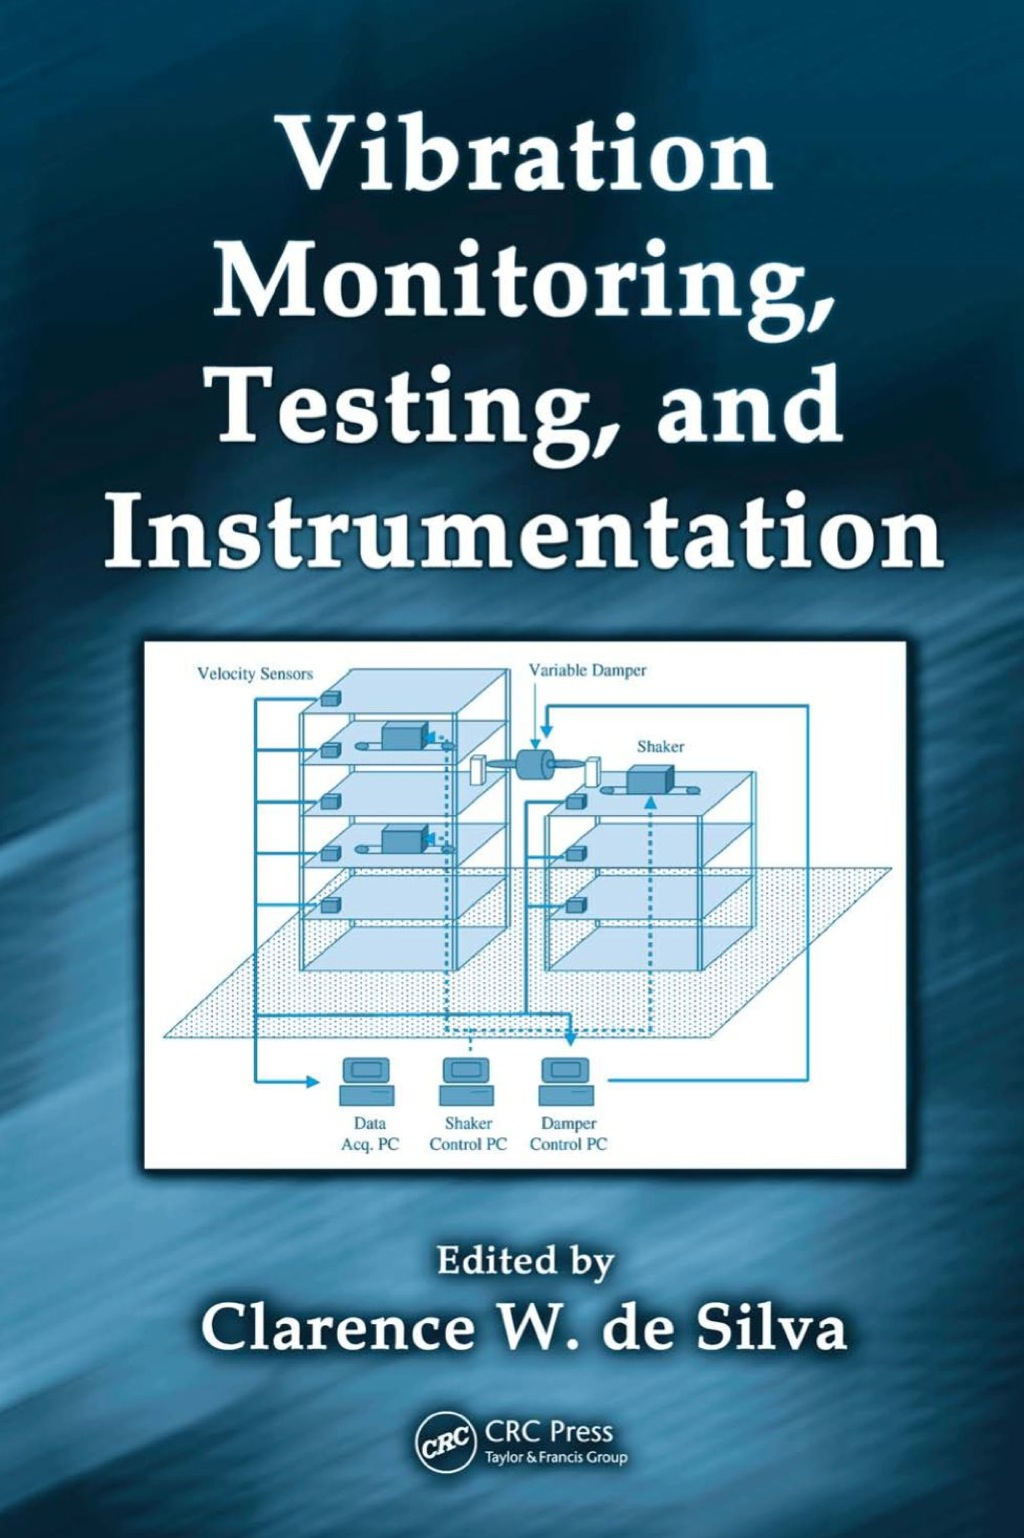 Vibration Monitoring, Testing, and Instrumentation (ebook) eBooks